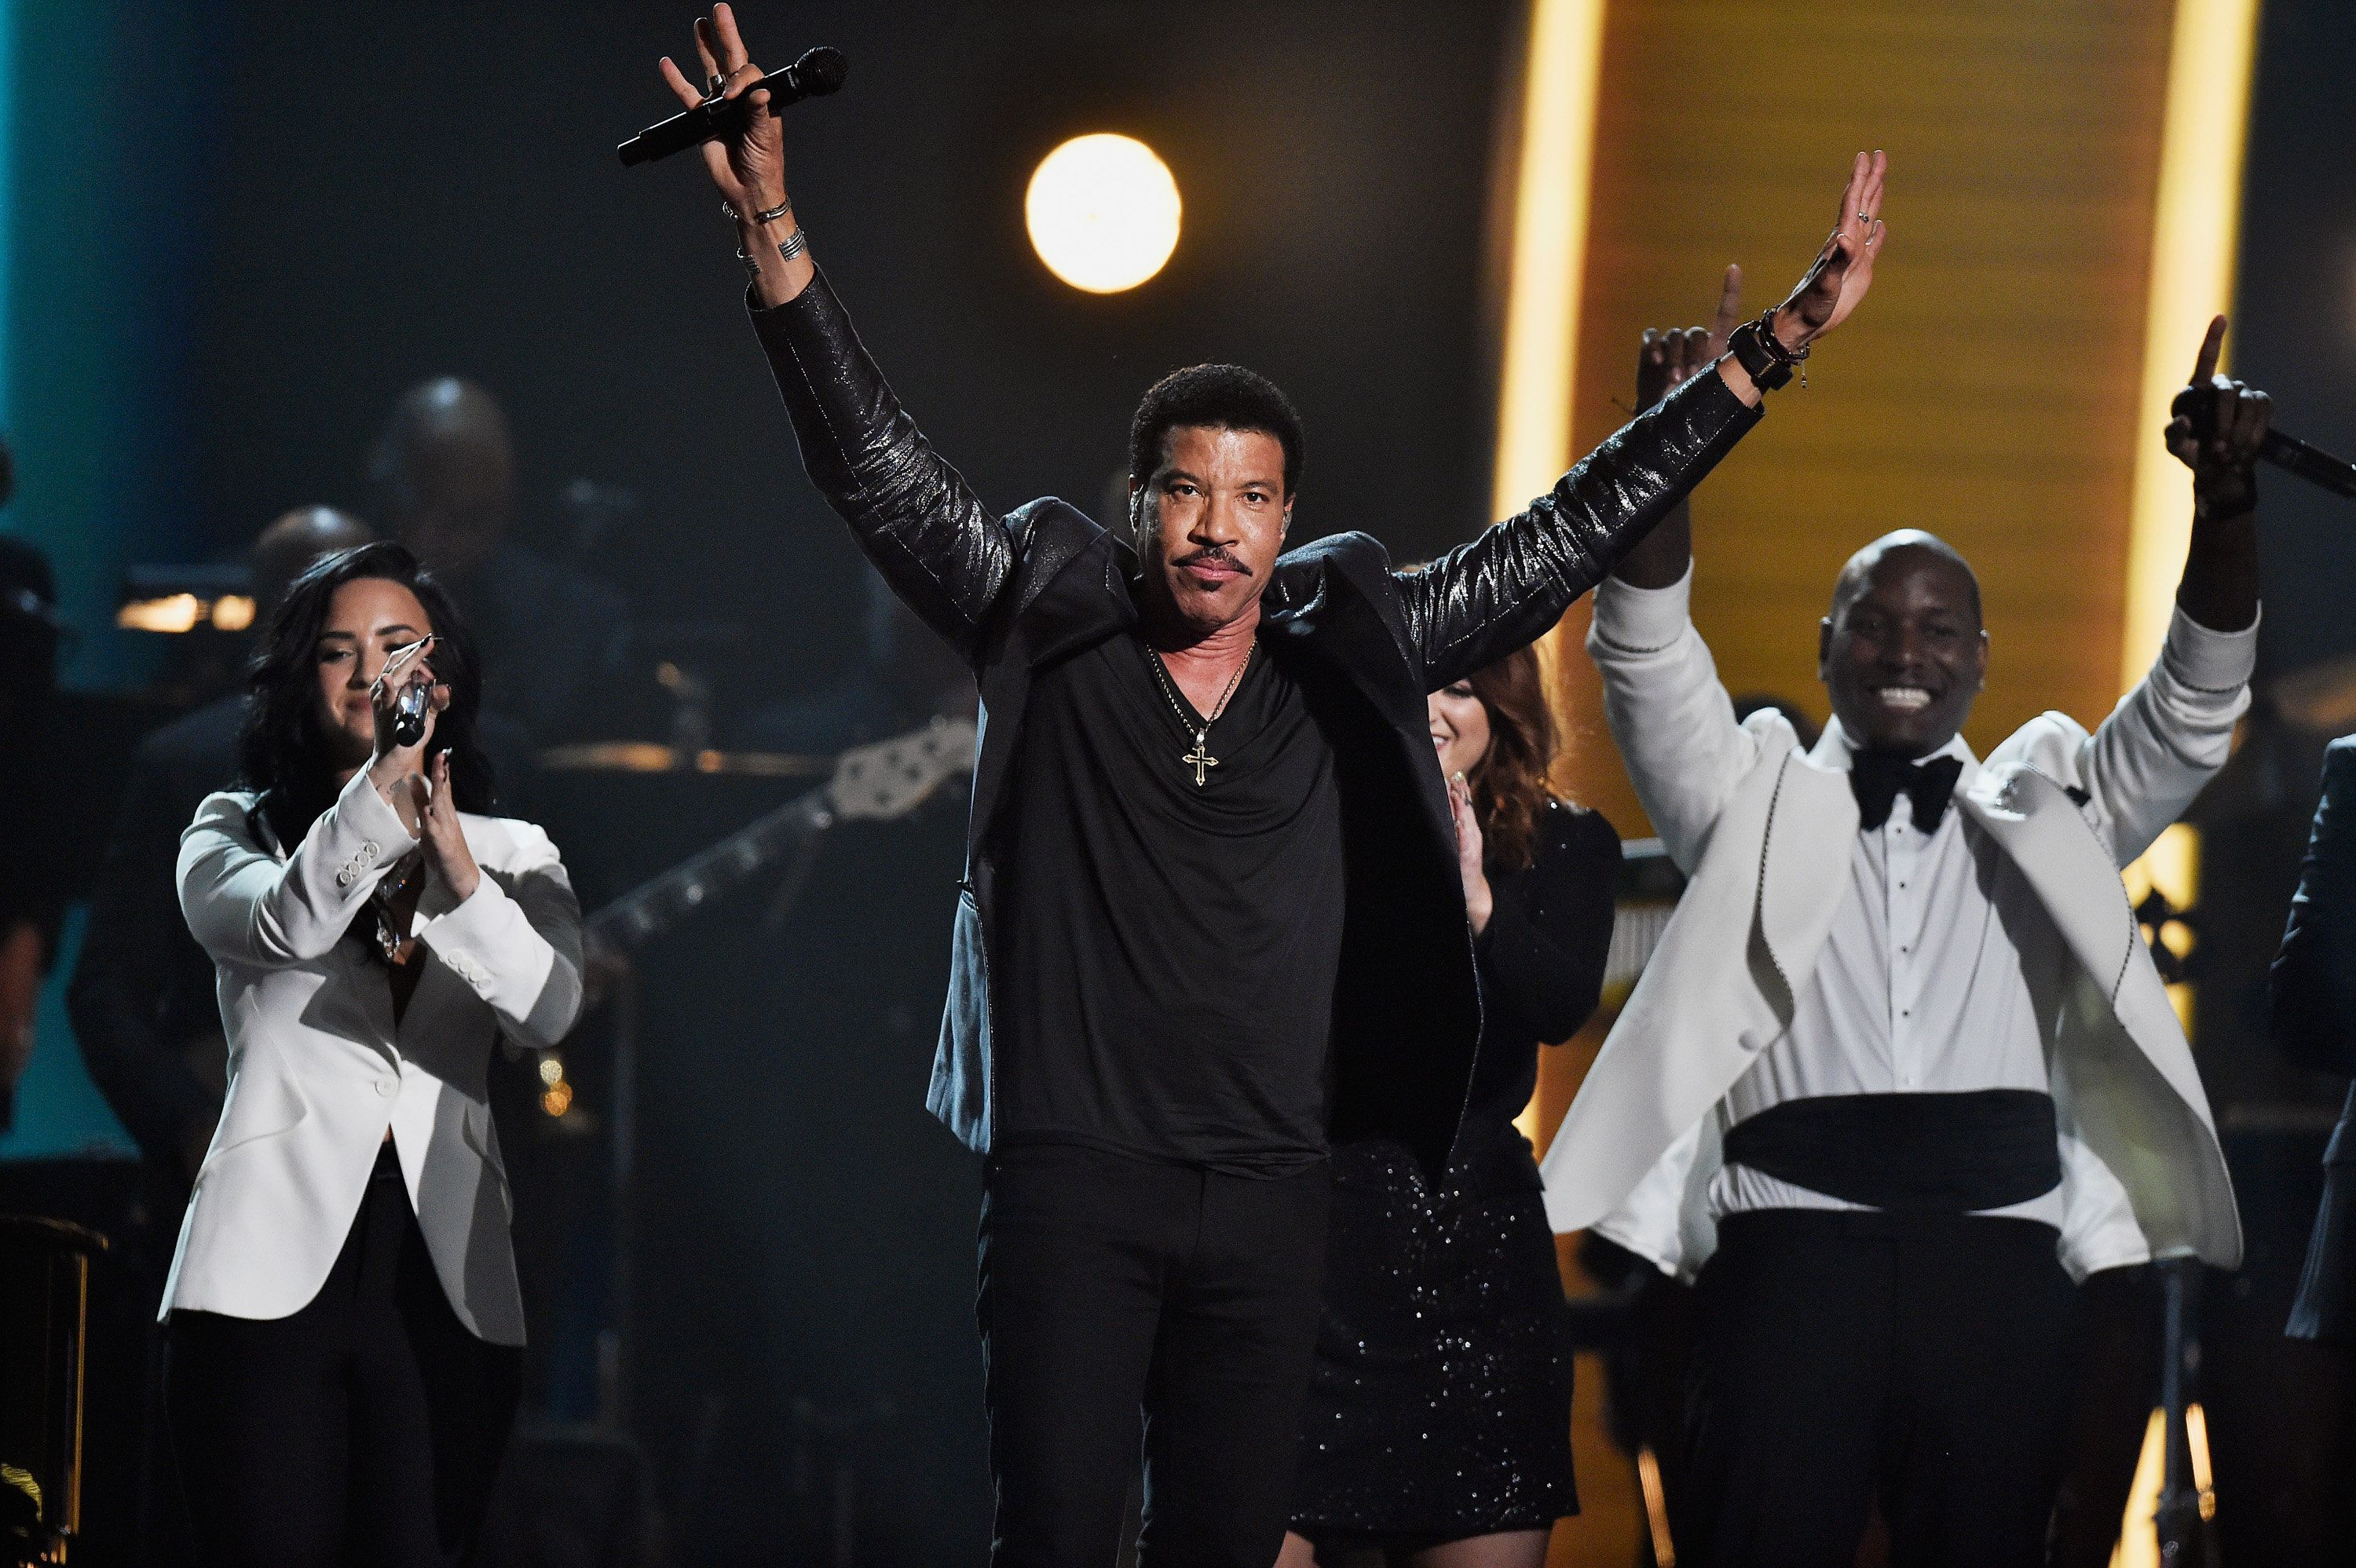 LOS ANGELES, CA - FEBRUARY 15:  (L-R) Singers Demi Lovato, Lionel Richie and Tyrese Gibson perform onstage during The 58th GRAMMY Awards at Staples Center on February 15, 2016 in Los Angeles, California.  (Photo by Kevork Djansezian/Getty Images for NARAS)